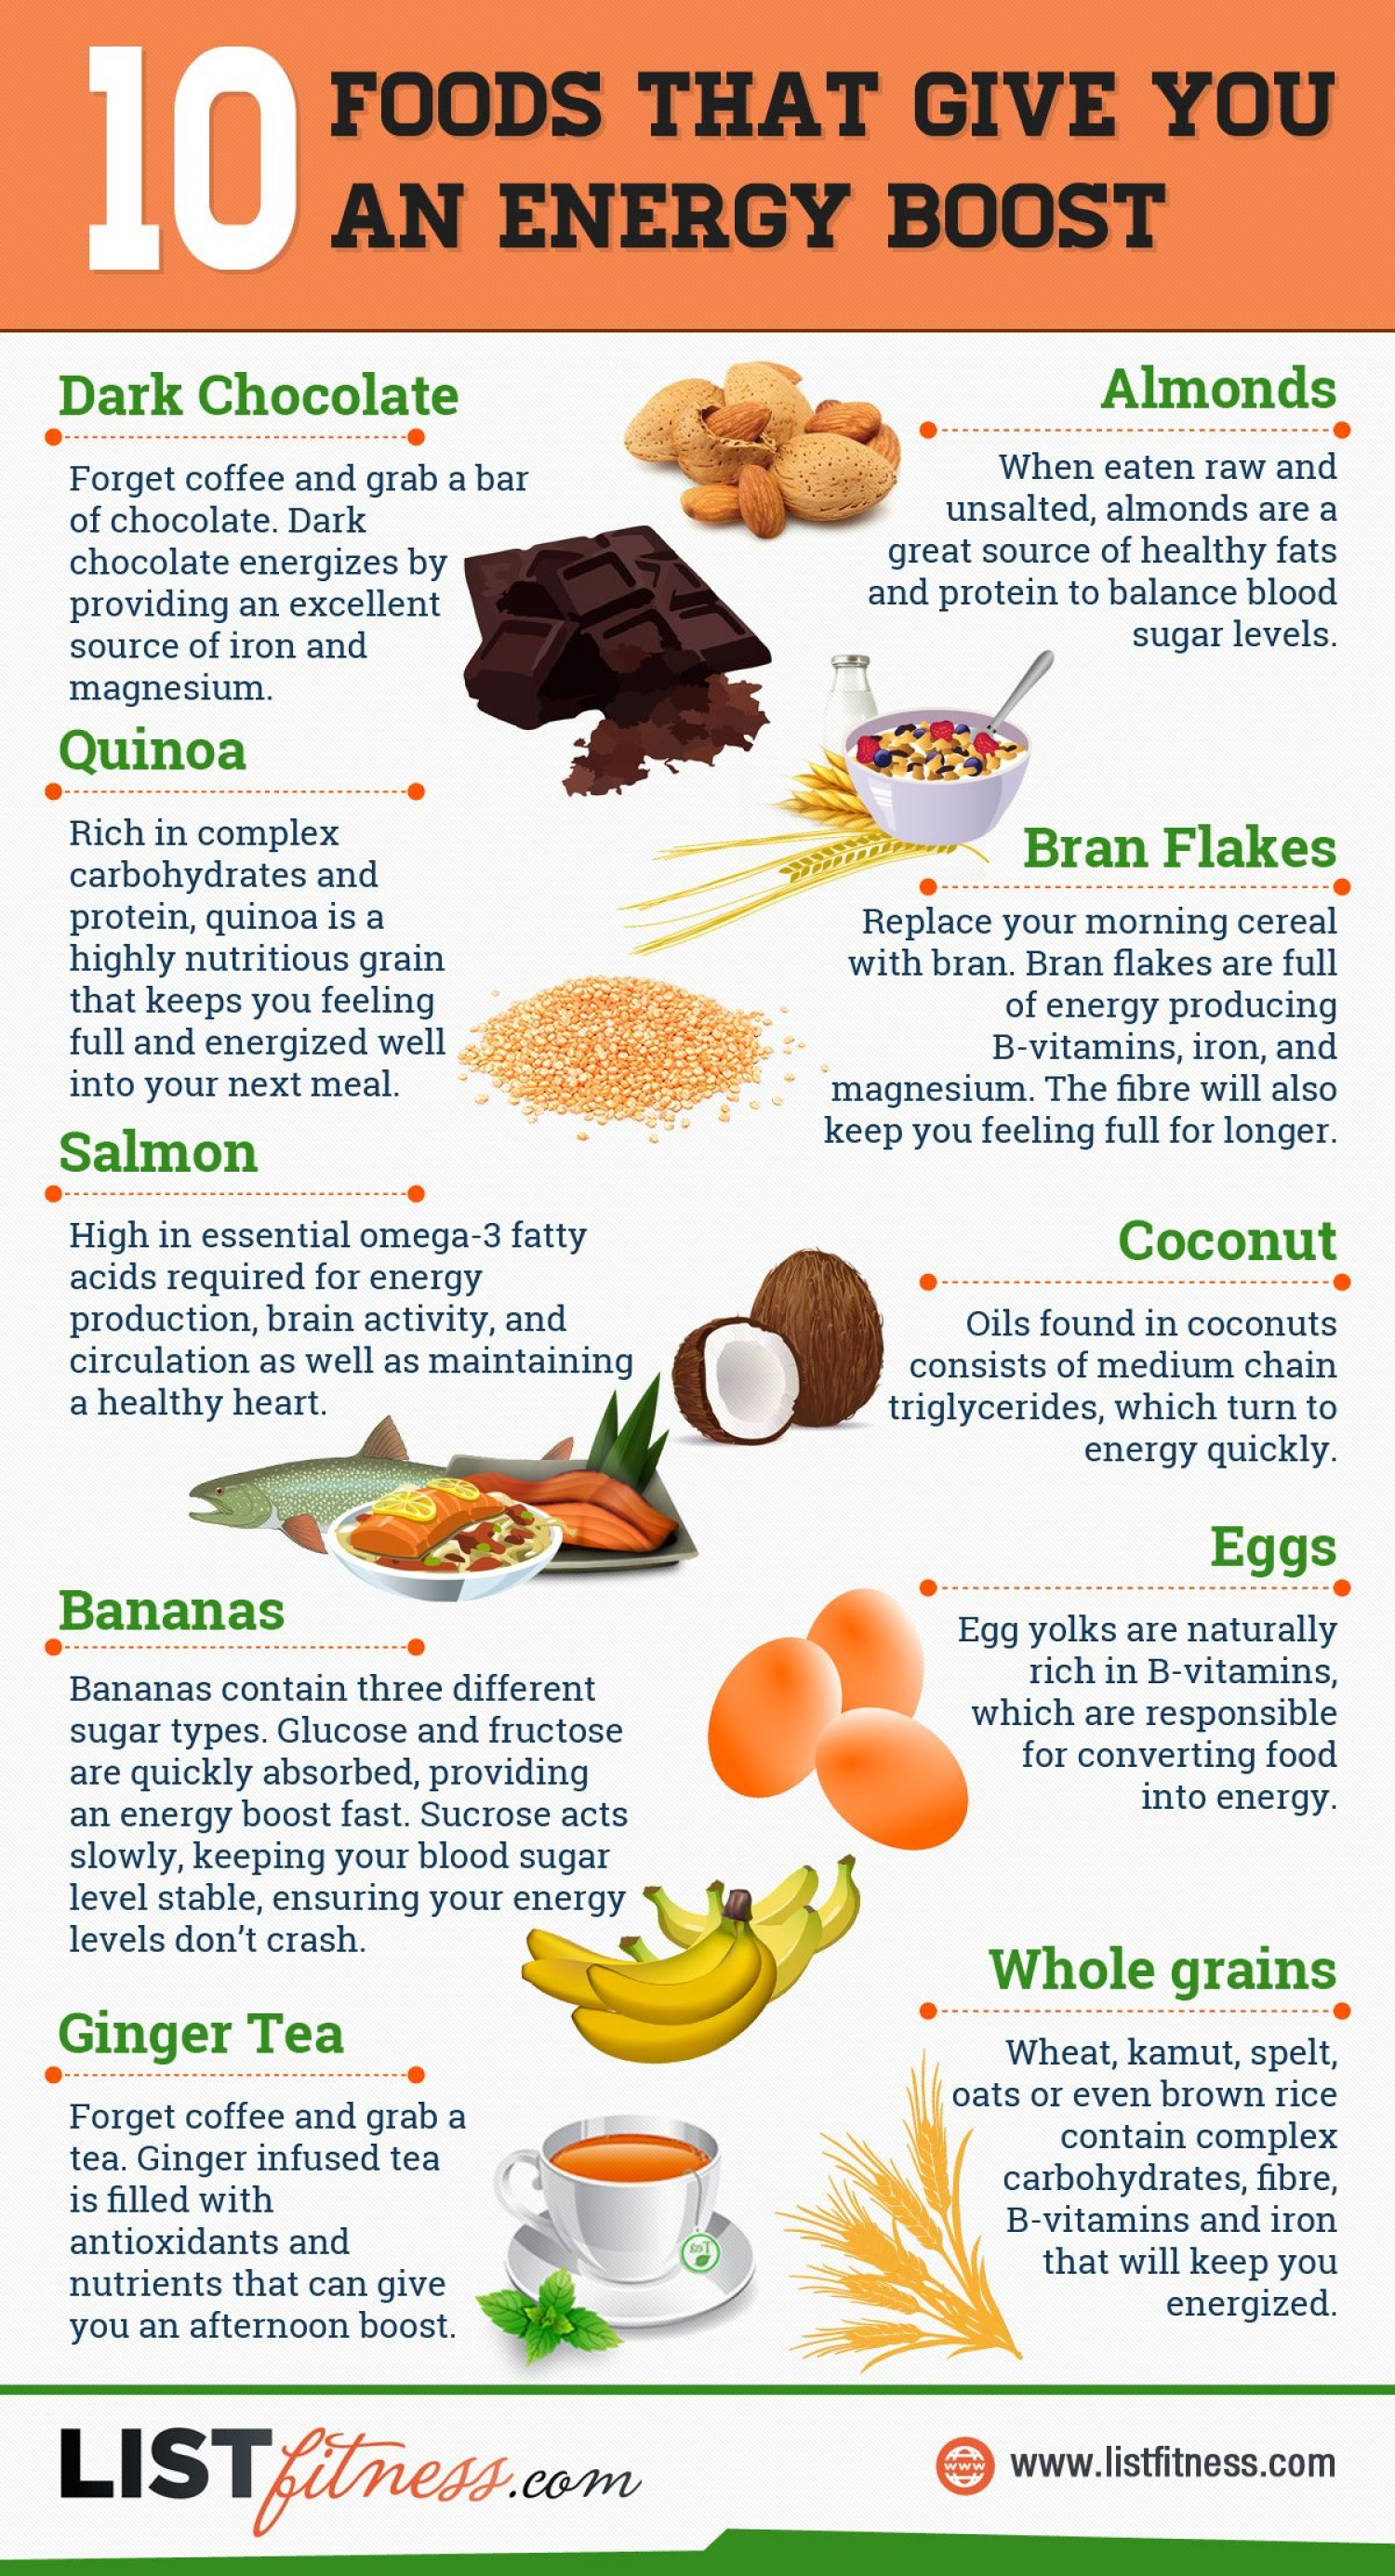 10 Foods That Give You An Energy Boost